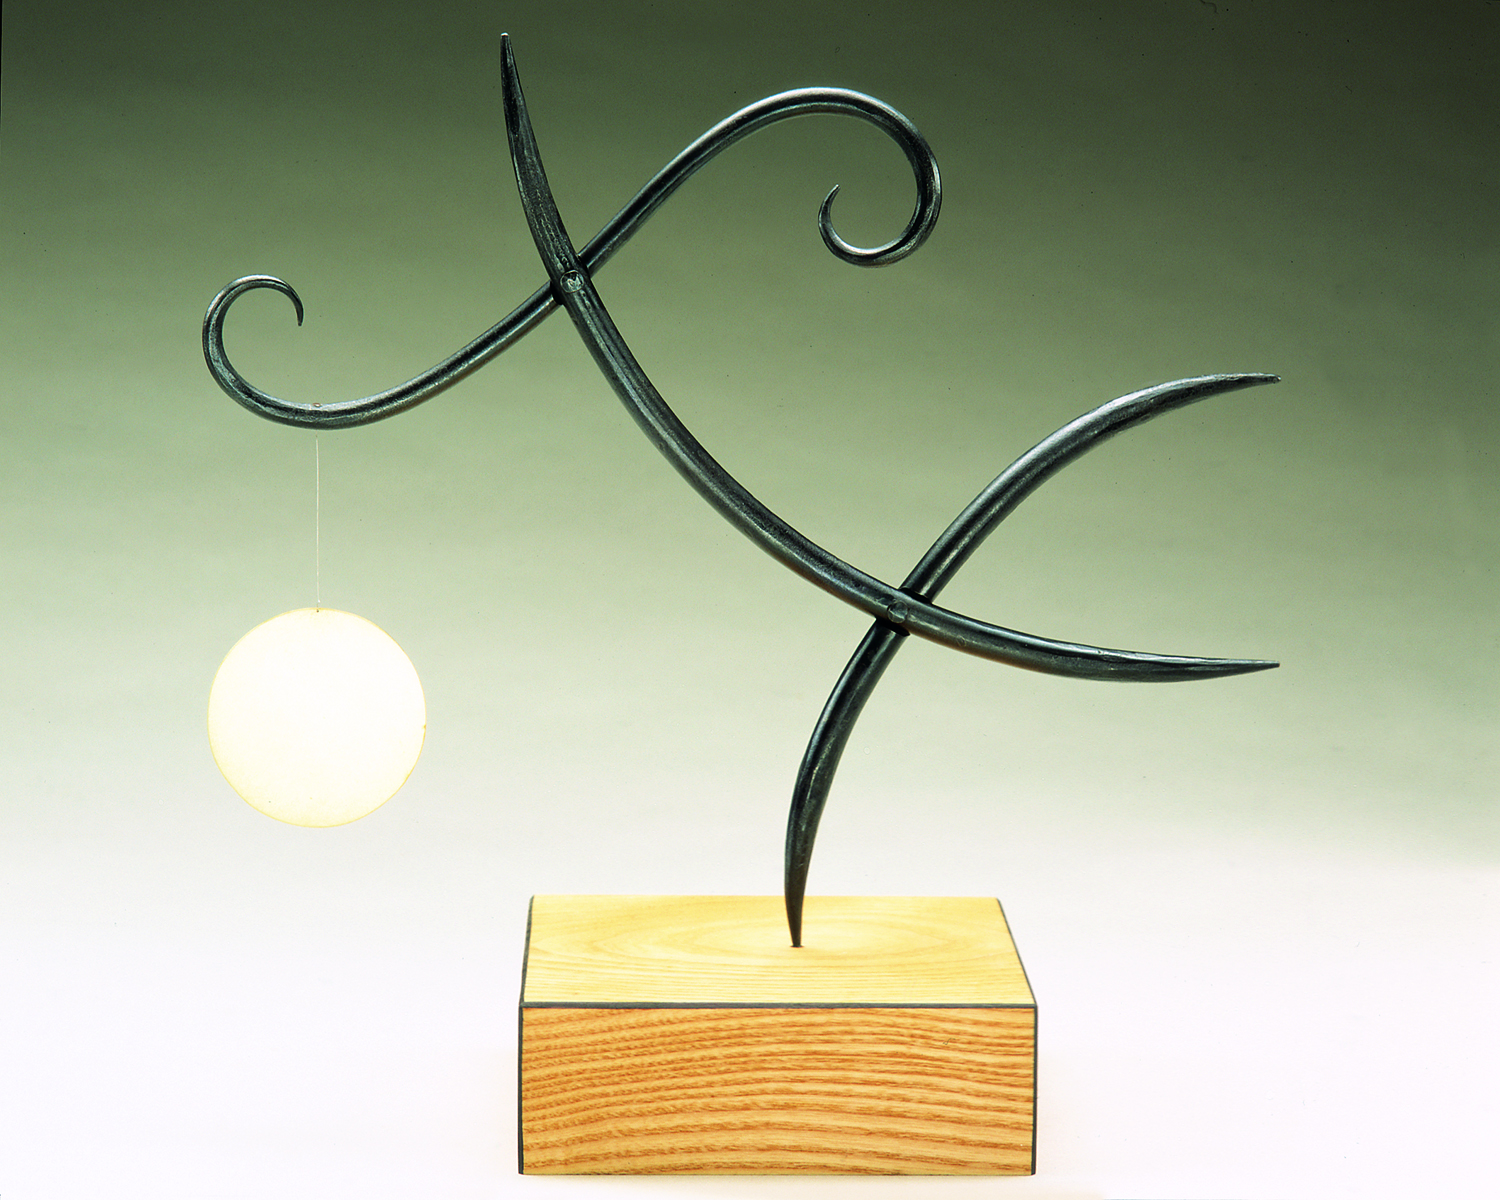 Chasing The Moon, 2002, steel, brass, wood, 16 x 18 x 7 in, SOLD